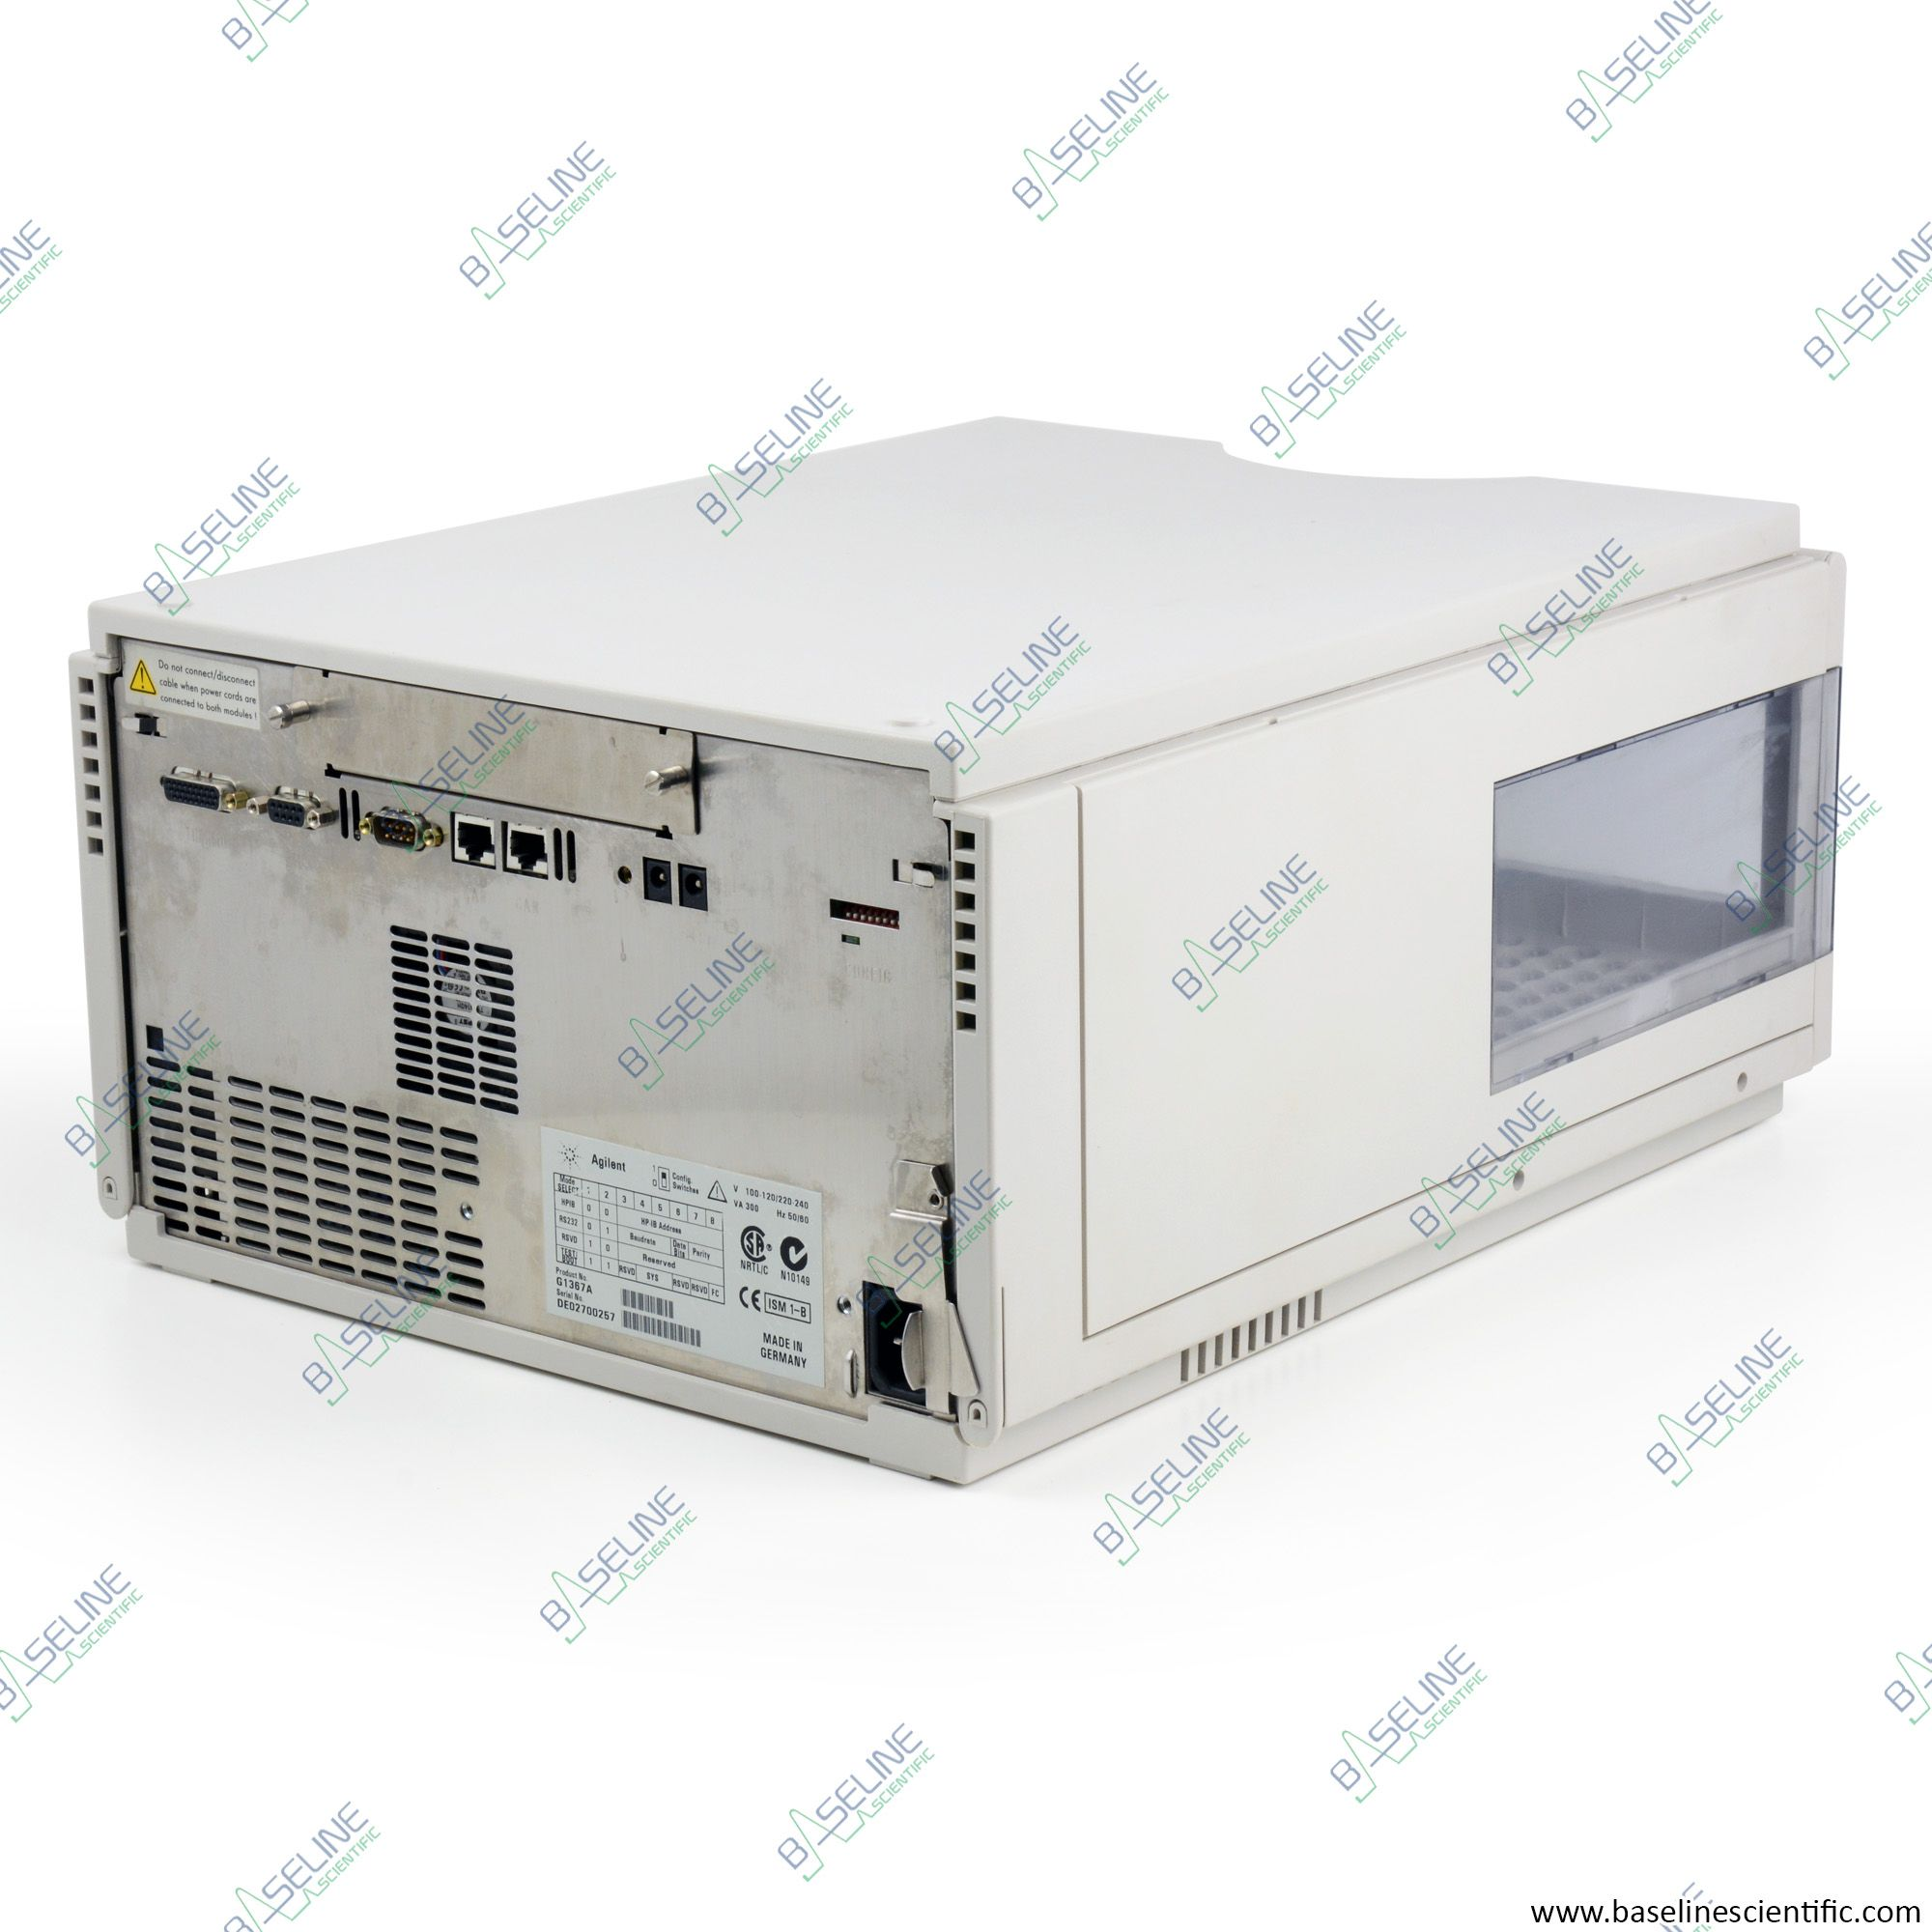 Refurbished Agilent HP 1100 G1367A Well-plate Sampler with ONE YEAR WARRANTY